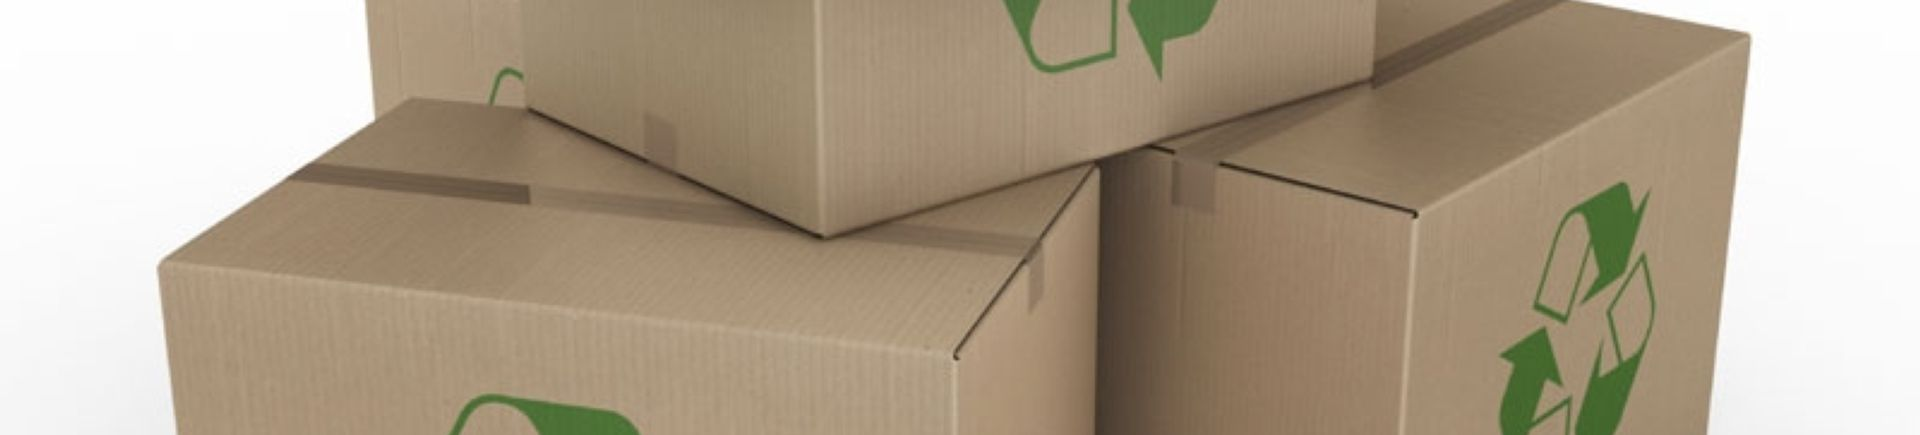 Easy-to-Recycle Packaging